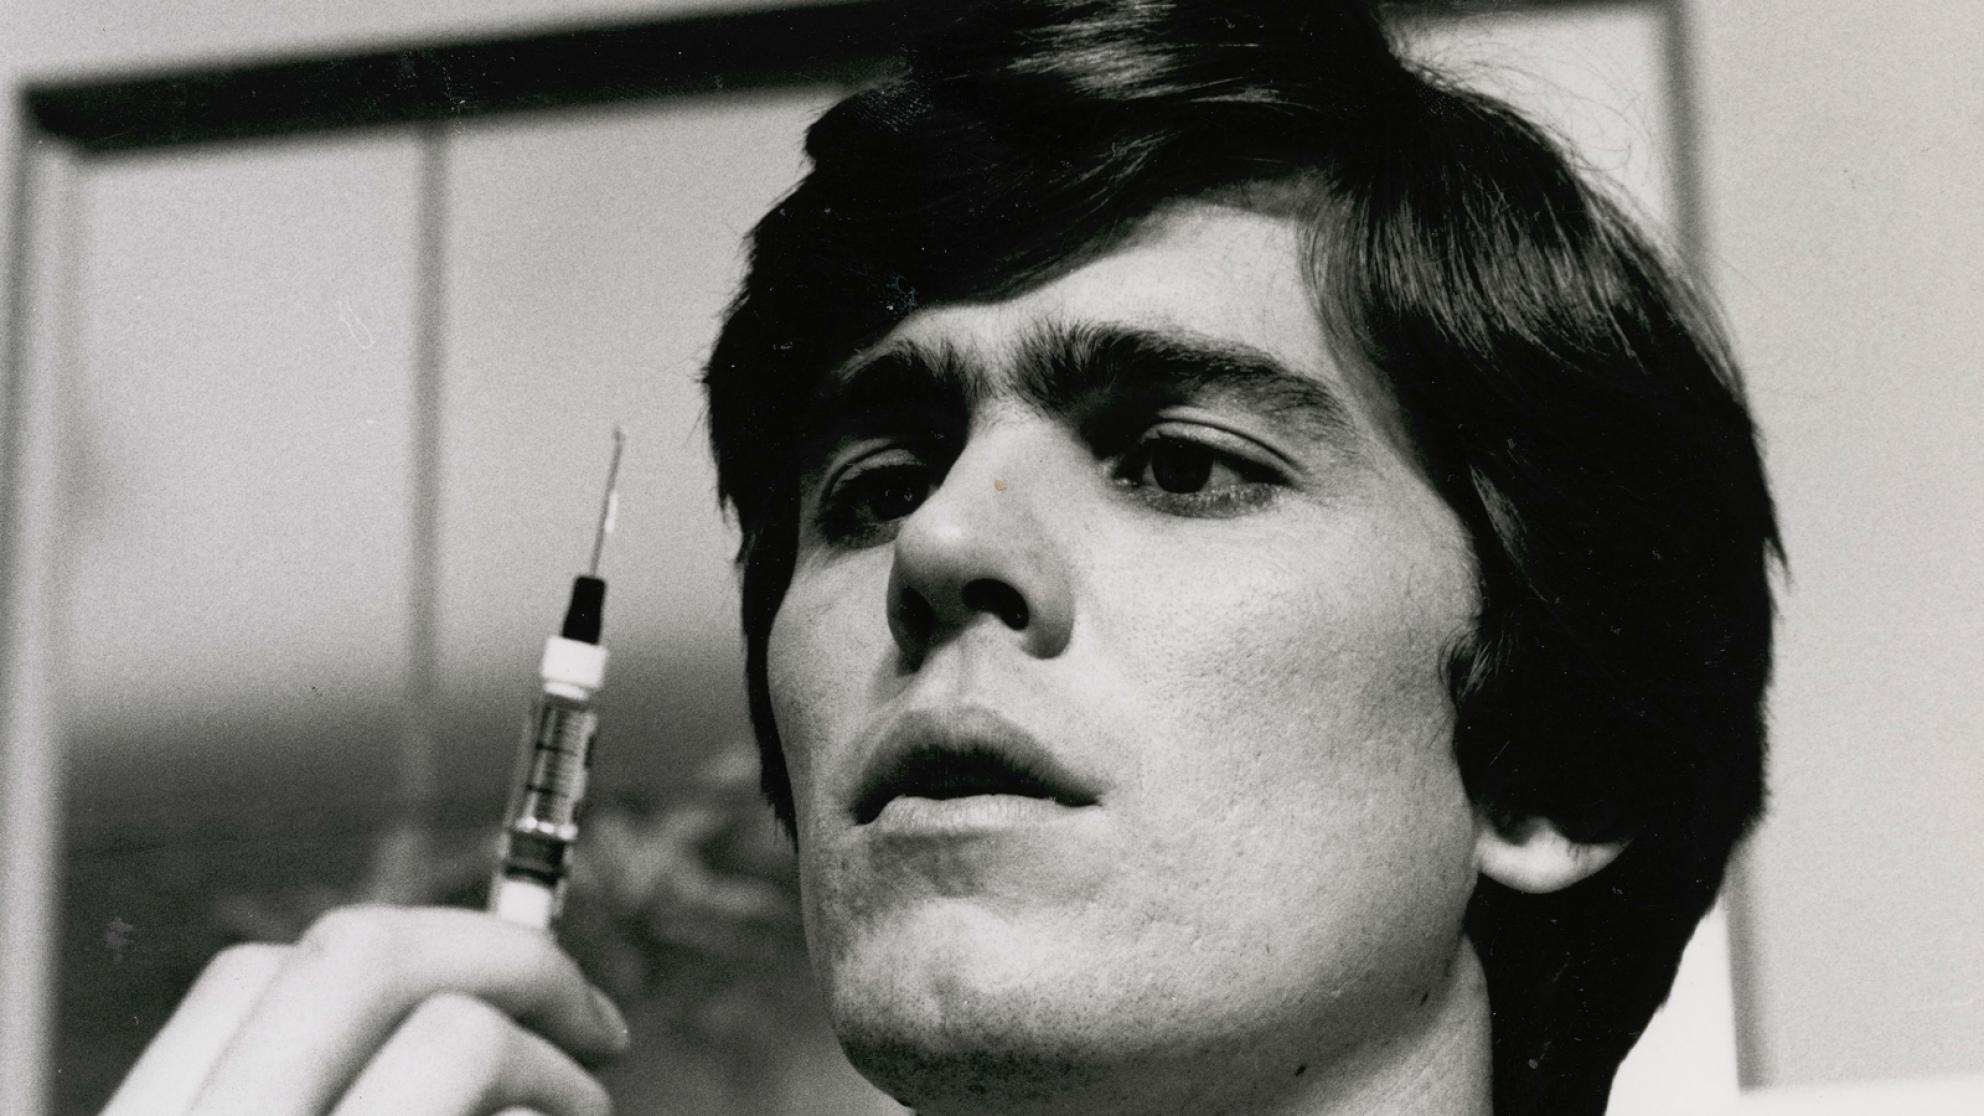 Mark Holden as Dr Greg Mason in The Young Doctors, pictured holding a syringe.